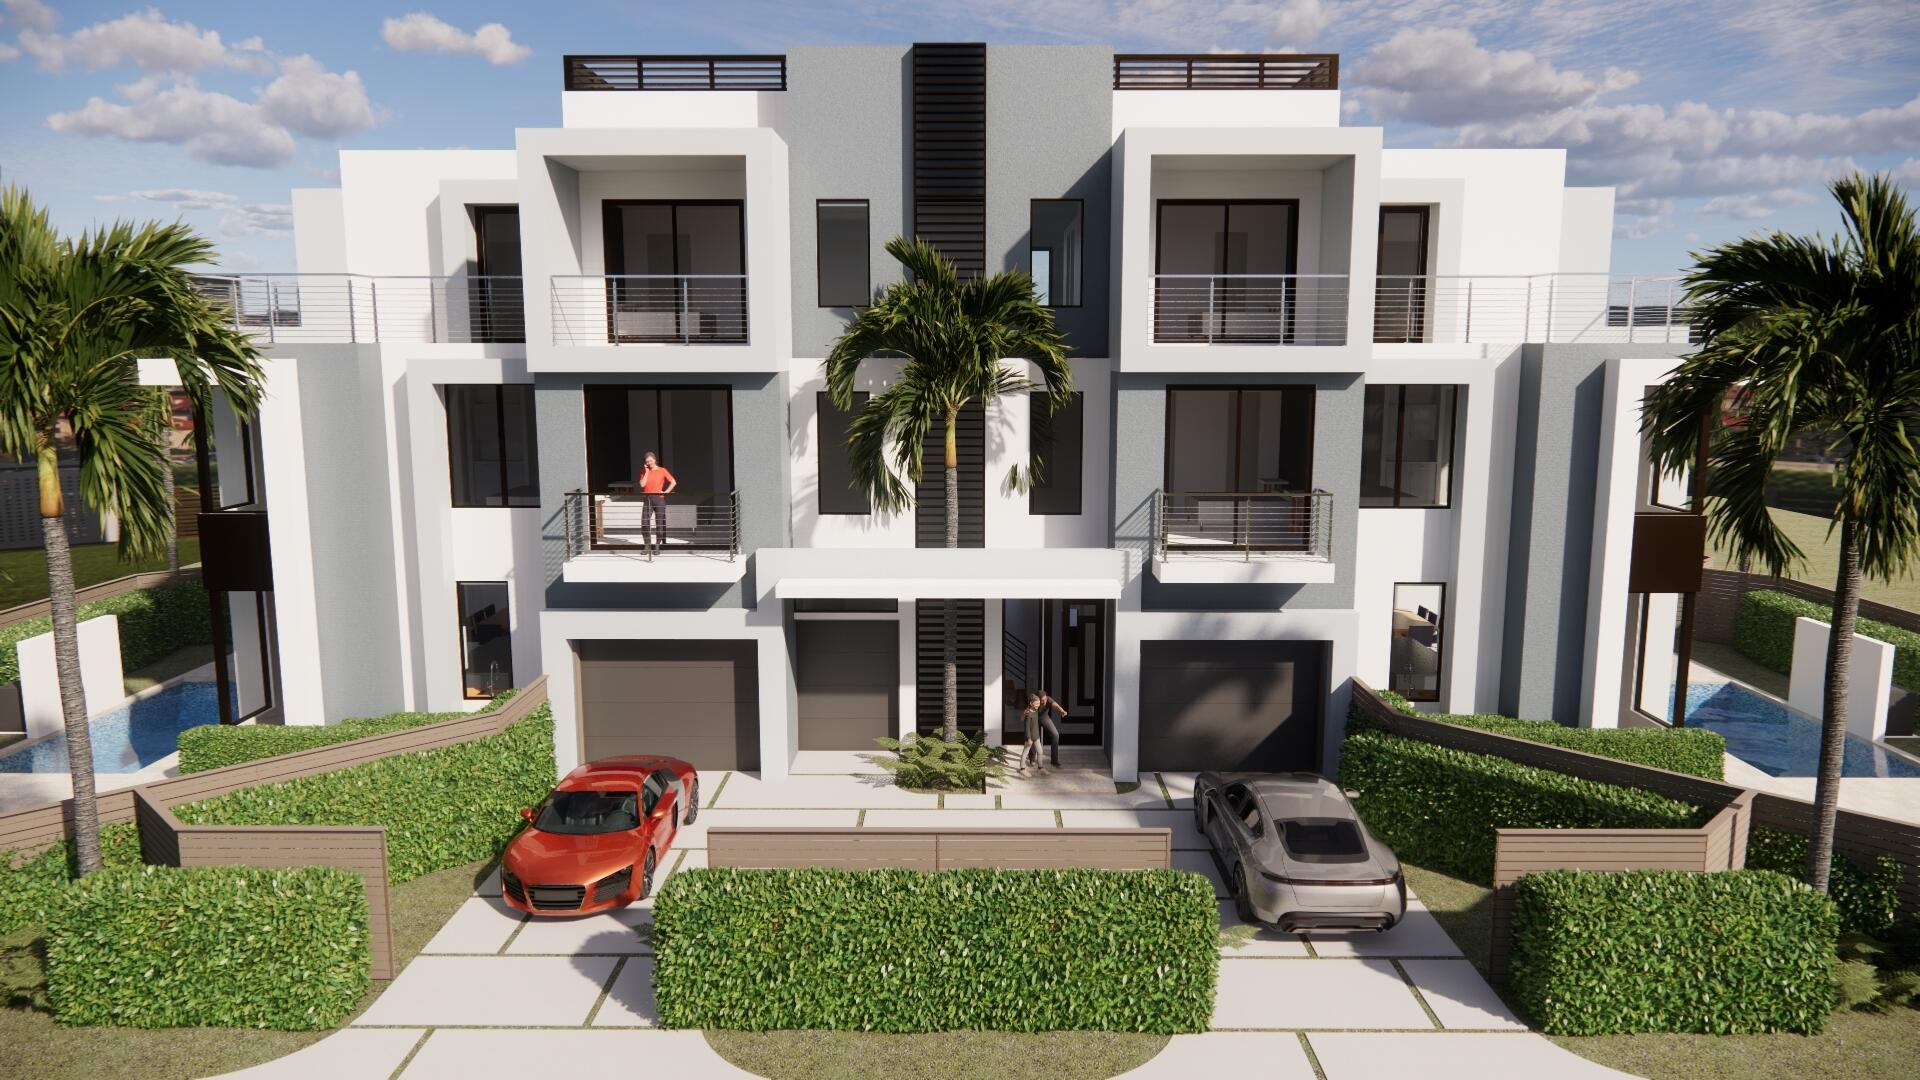 Main picture - Townhouse of Delray